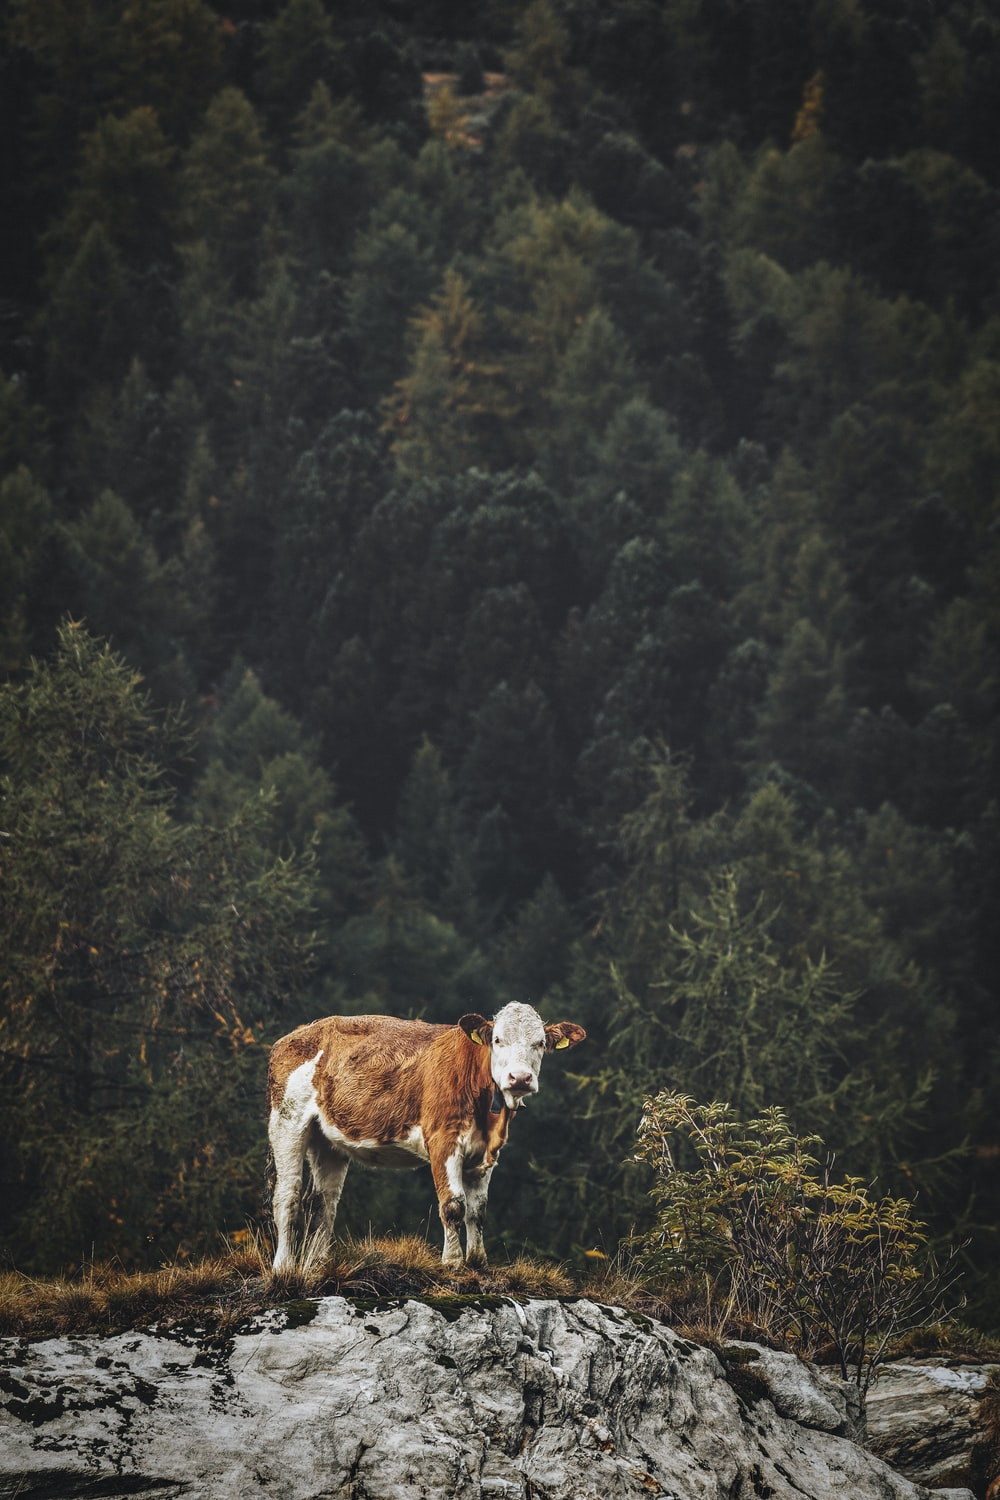 brown and white cow surrounded by trees